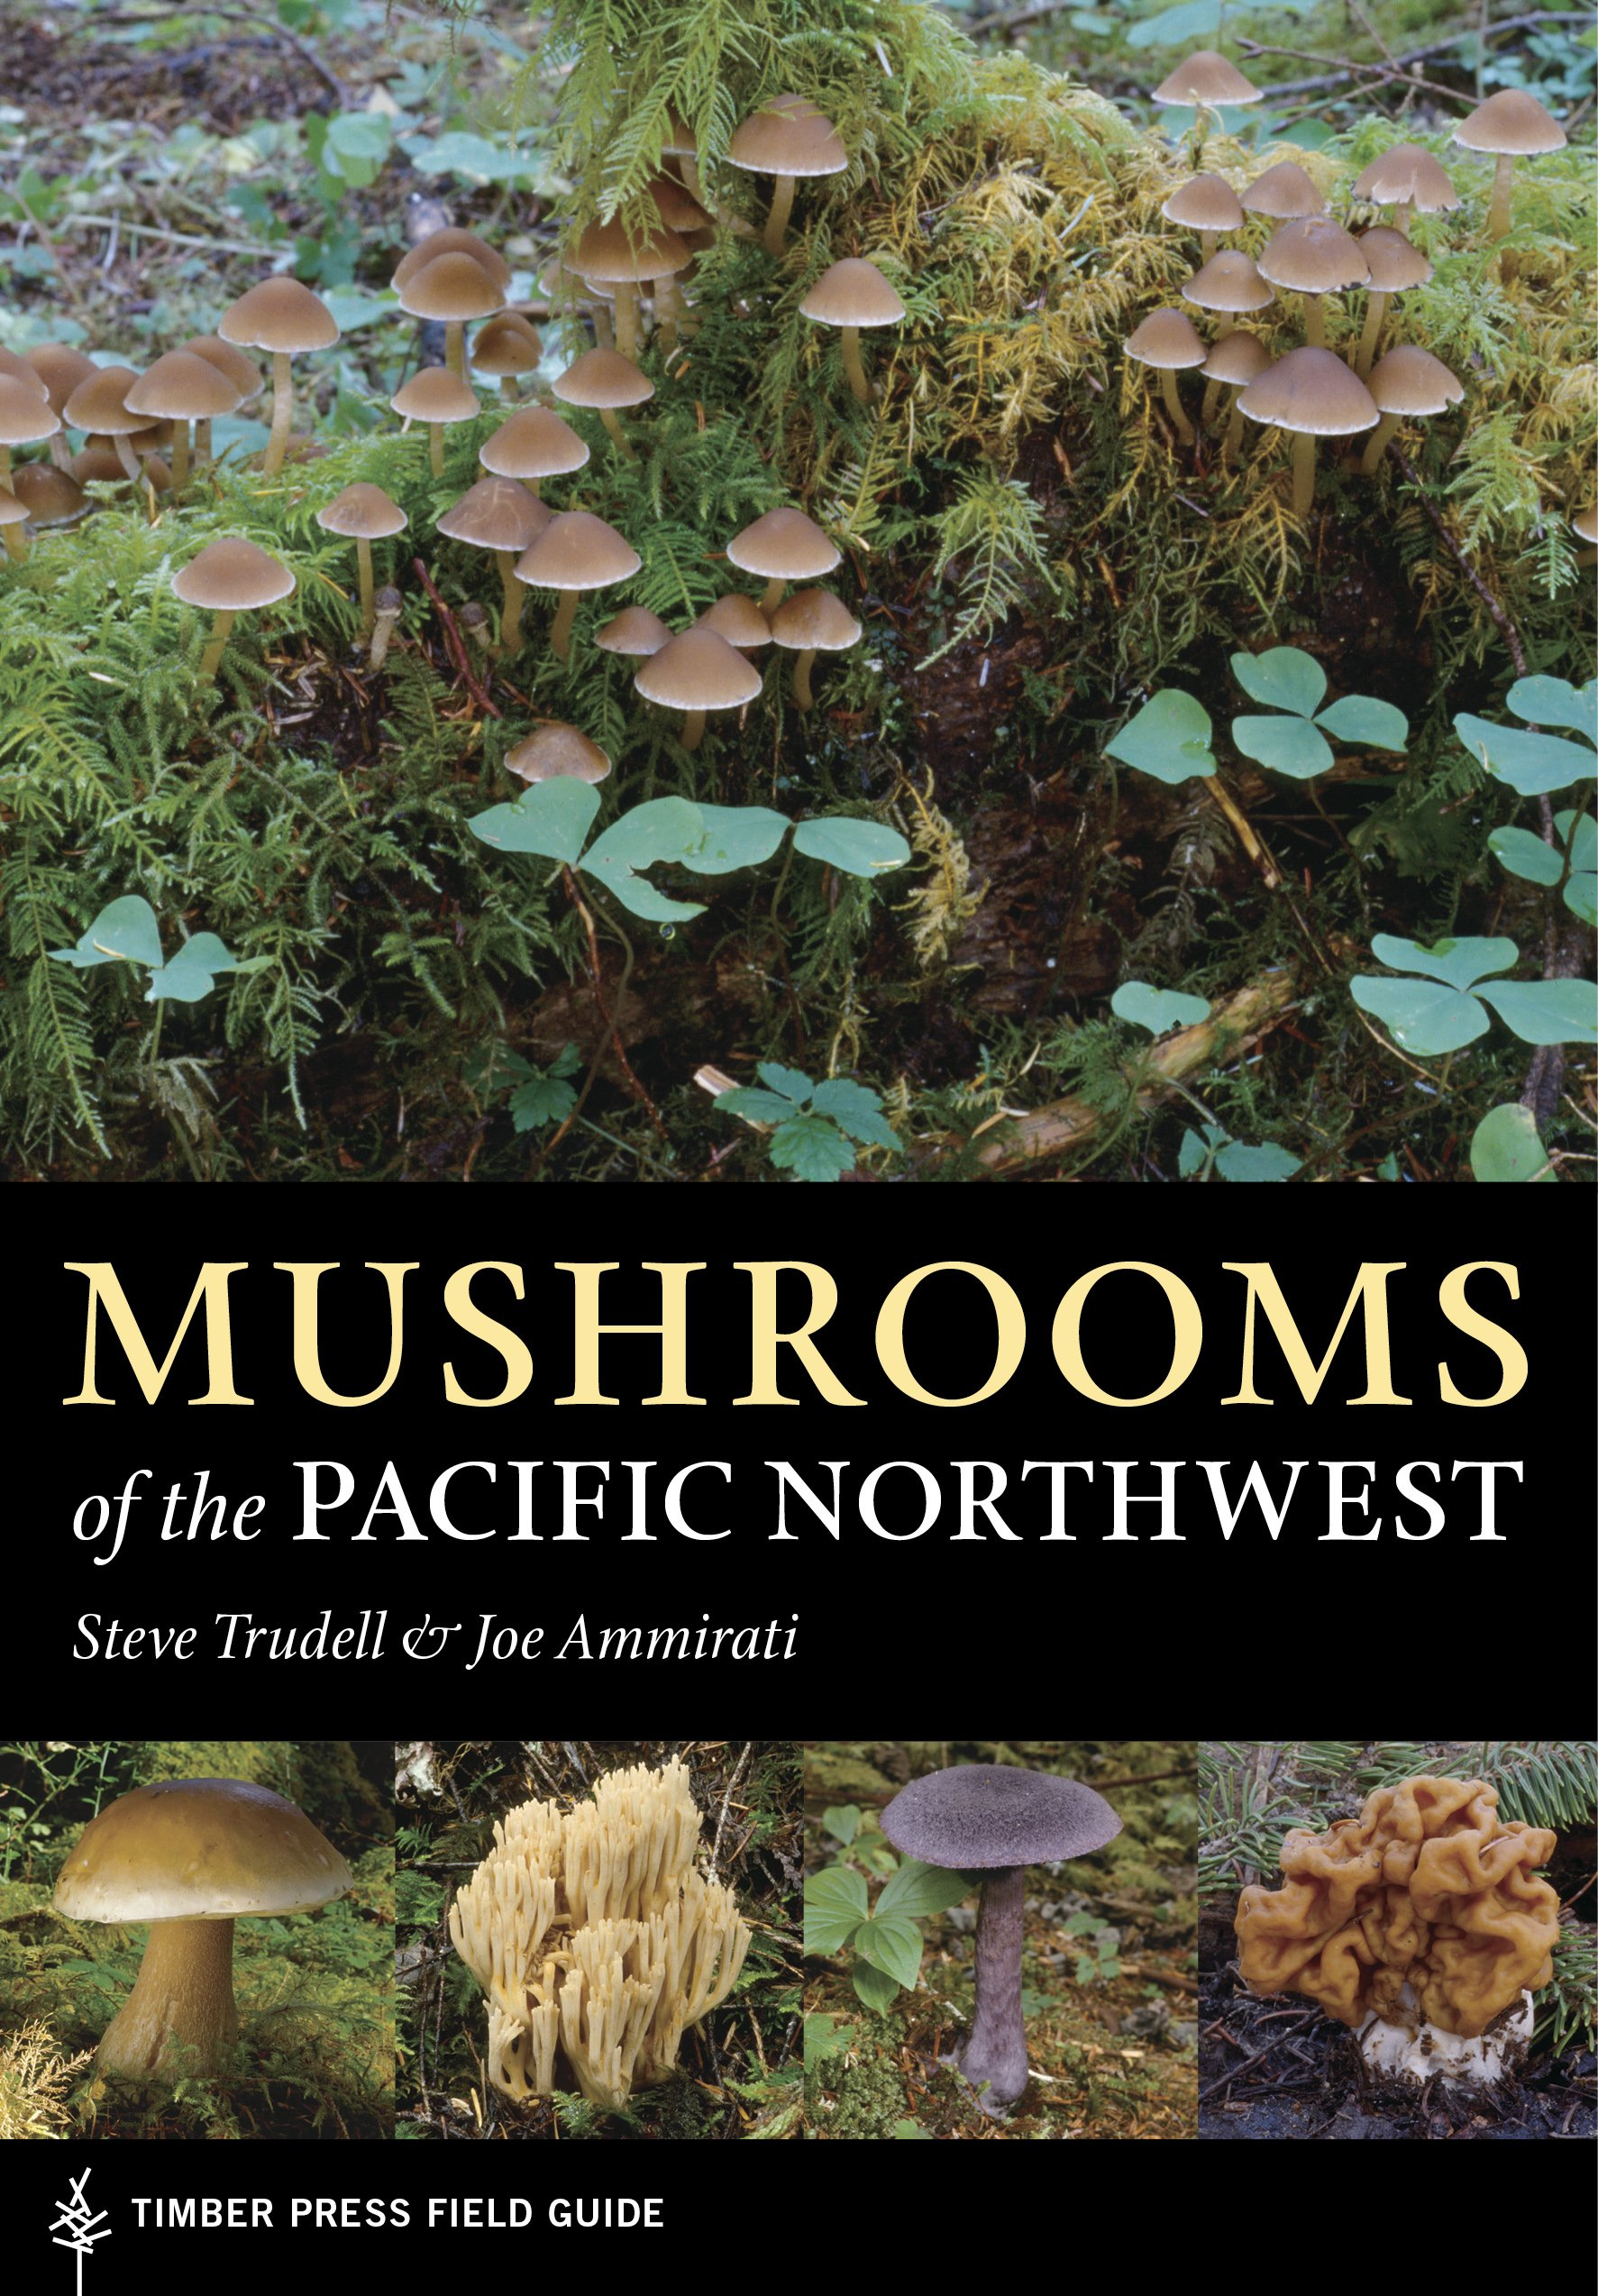 Mushrooms Of The Pacific Northwest A Timber Press Field Guide Joe